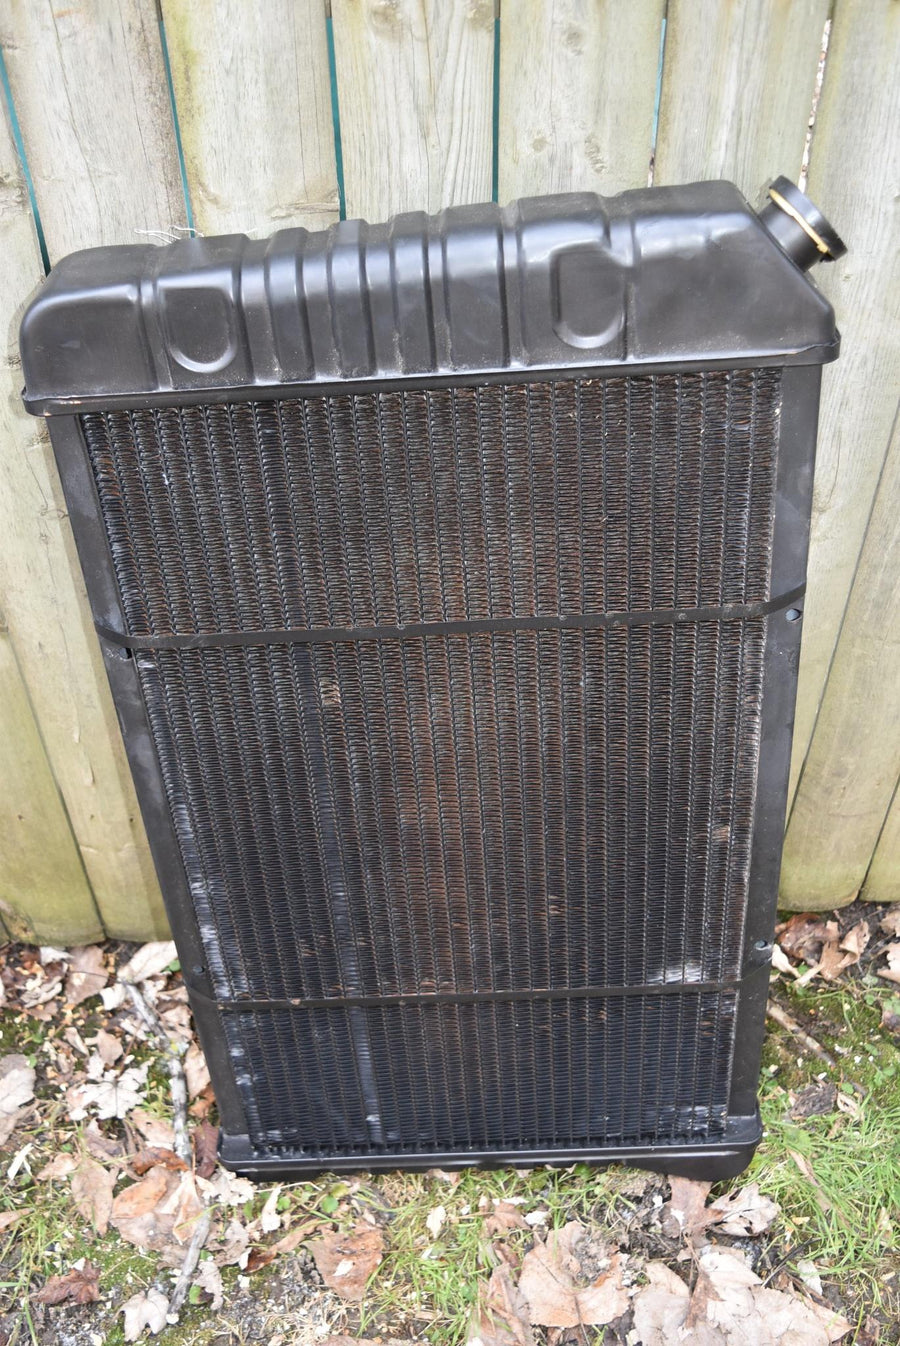 New With Tags 1970-1981 Pontiac Firebird Radiator Camaro DAMAGED Aftermarket